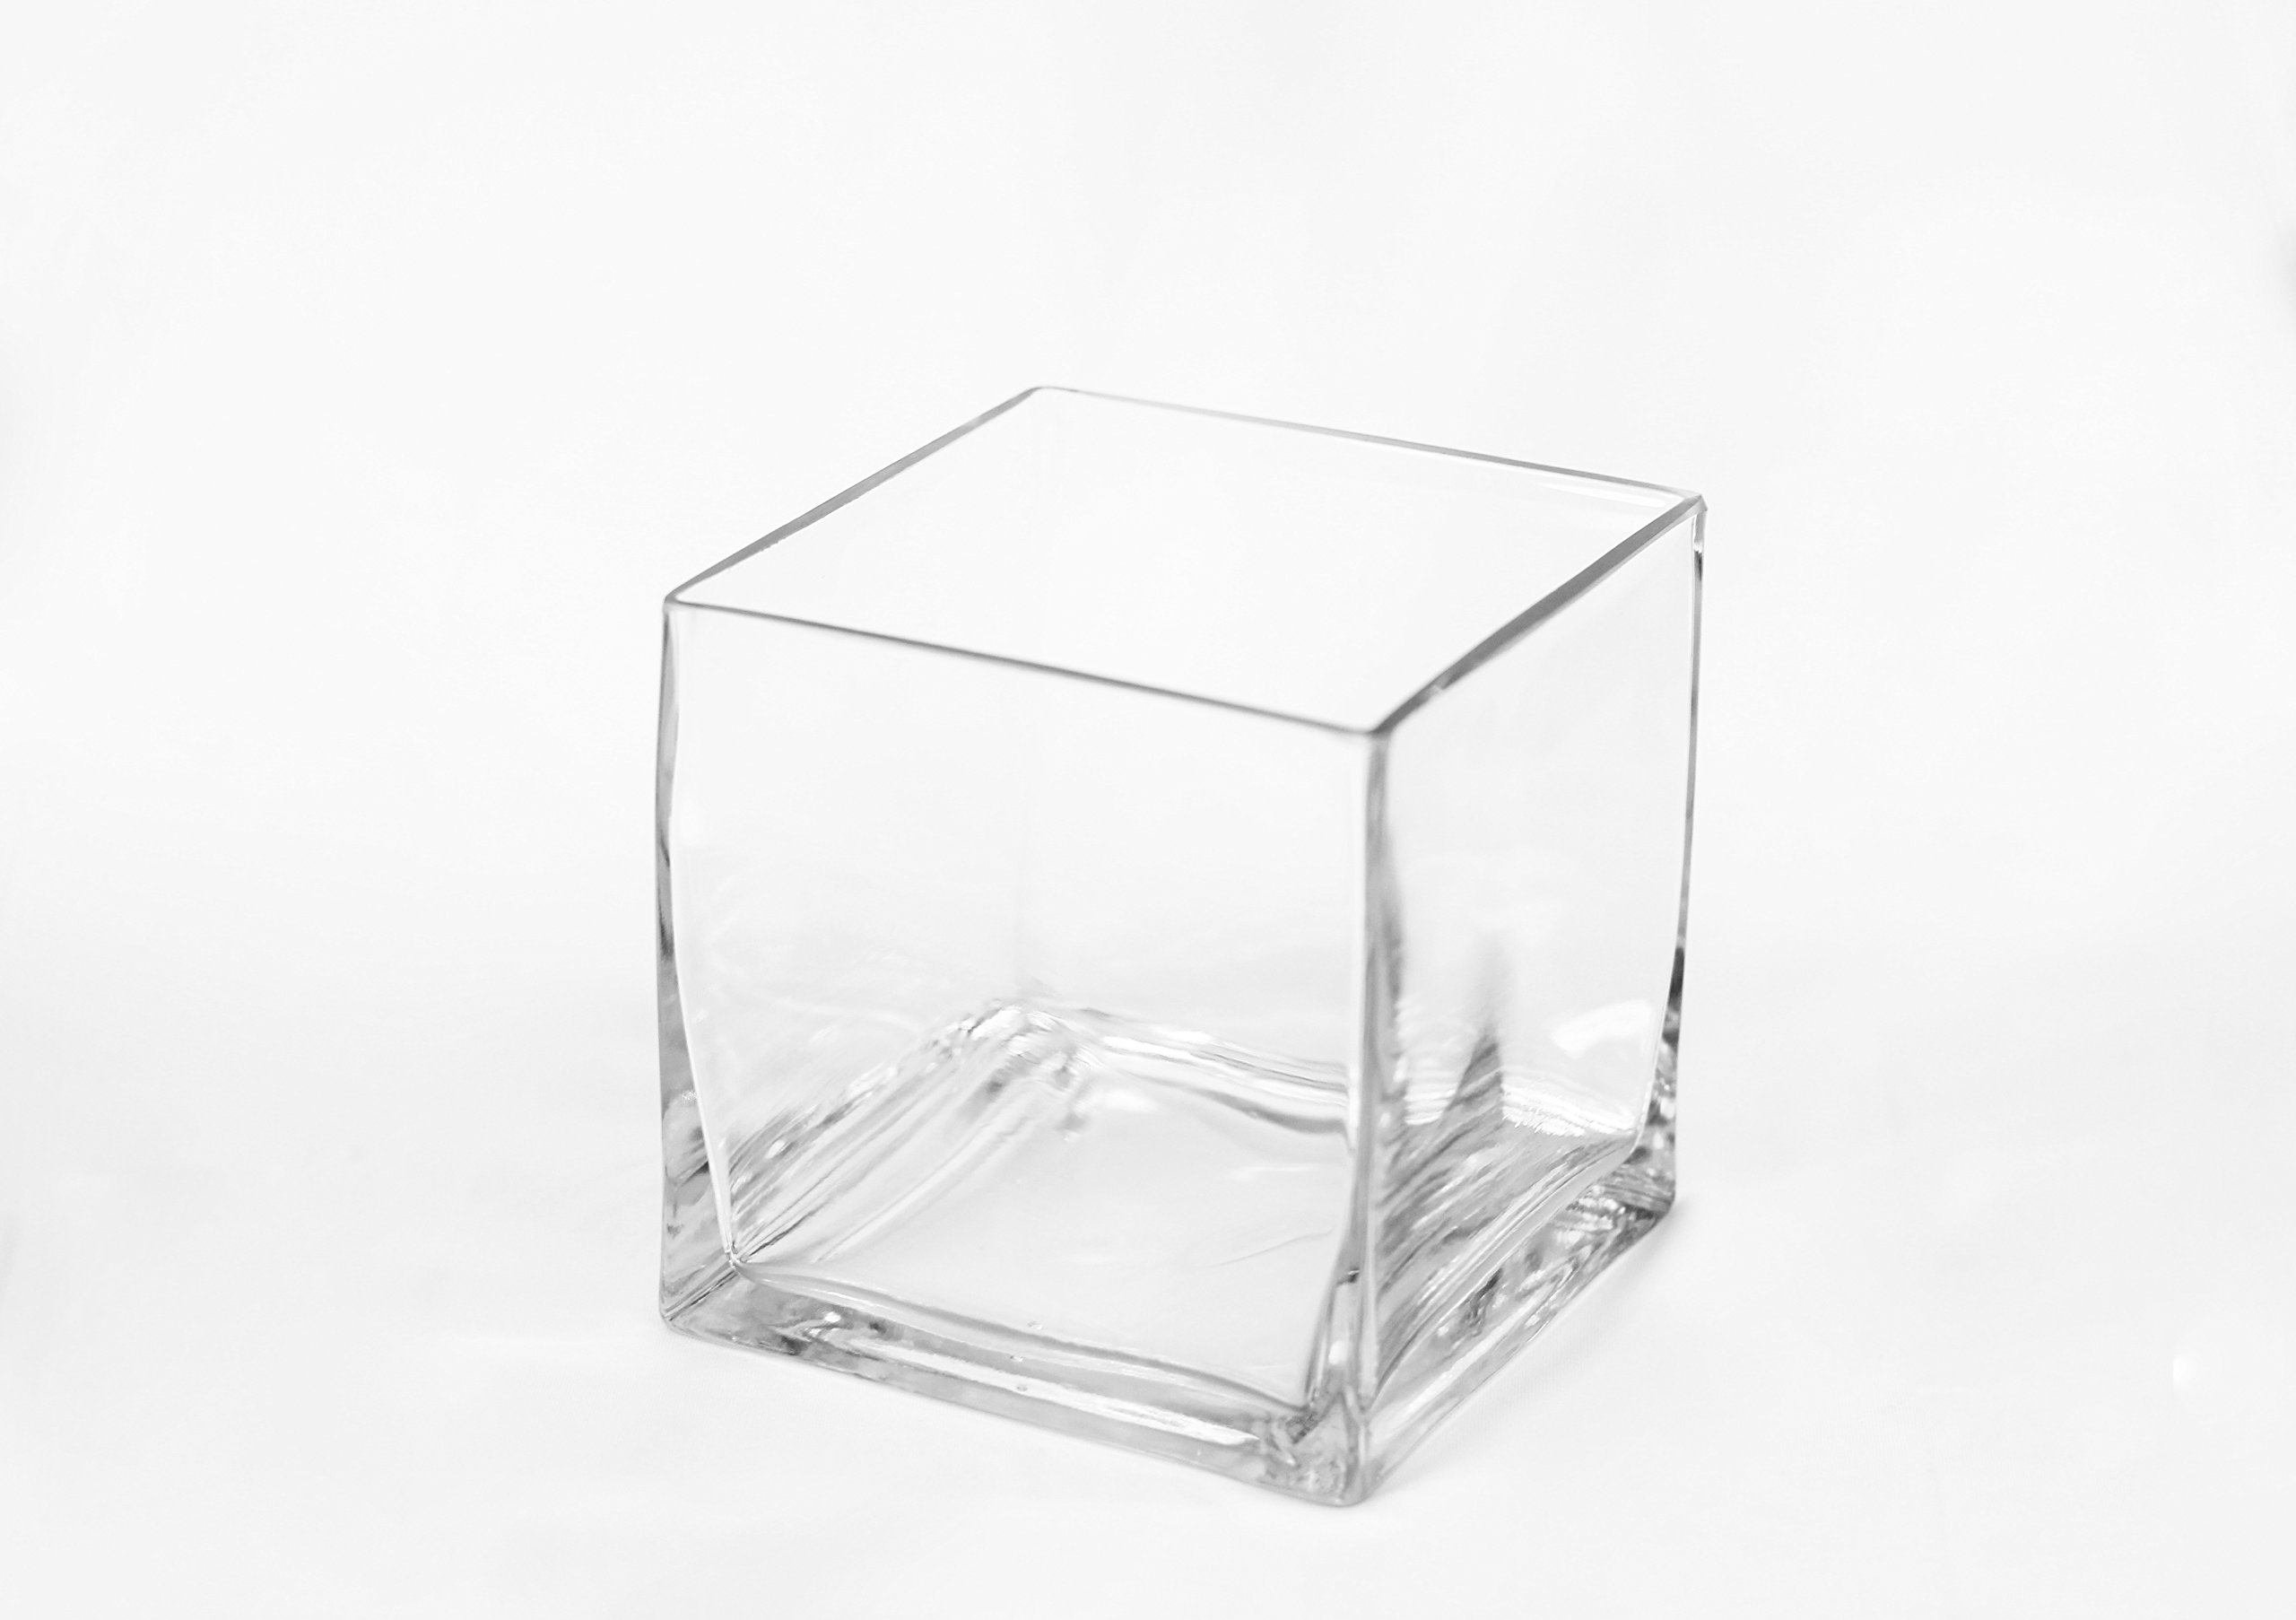 Beyond Vases 12 Pack - 5'' x 5'' Clear Square Small Glass Vase - Great as Table Centerpiece for Wedding Decoration/Candle Holder Vase/Floating Candle Arrangements